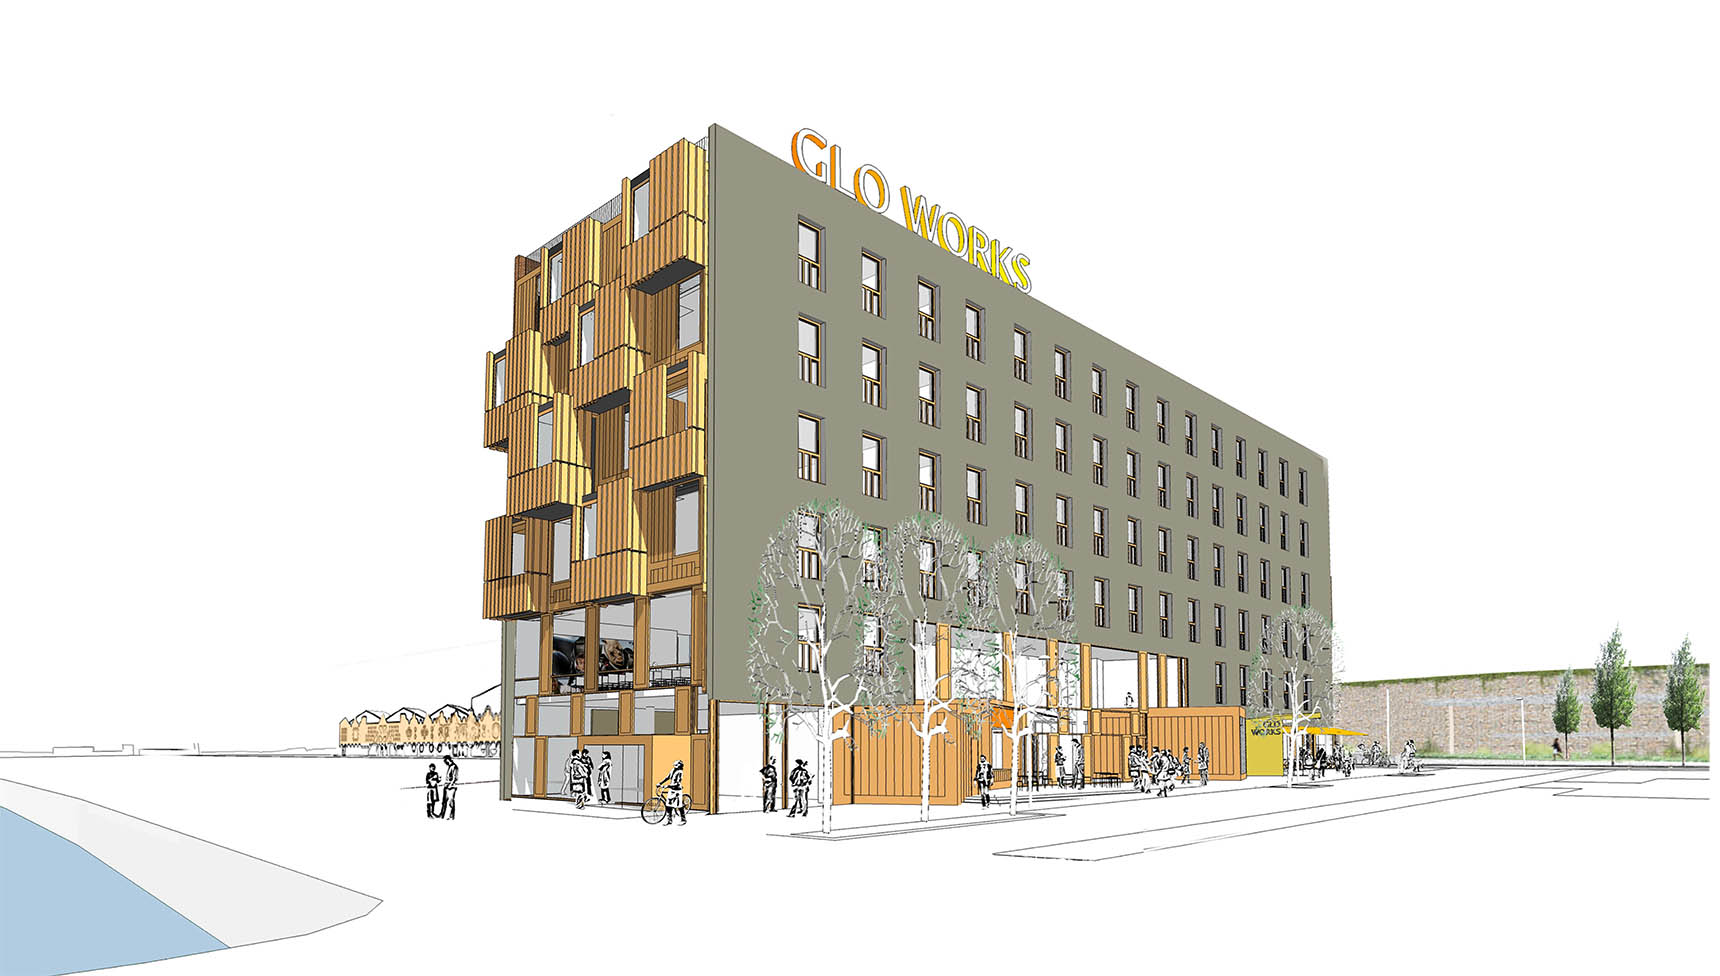 Sketchup view of Gloworks by Ash Sakula Architects